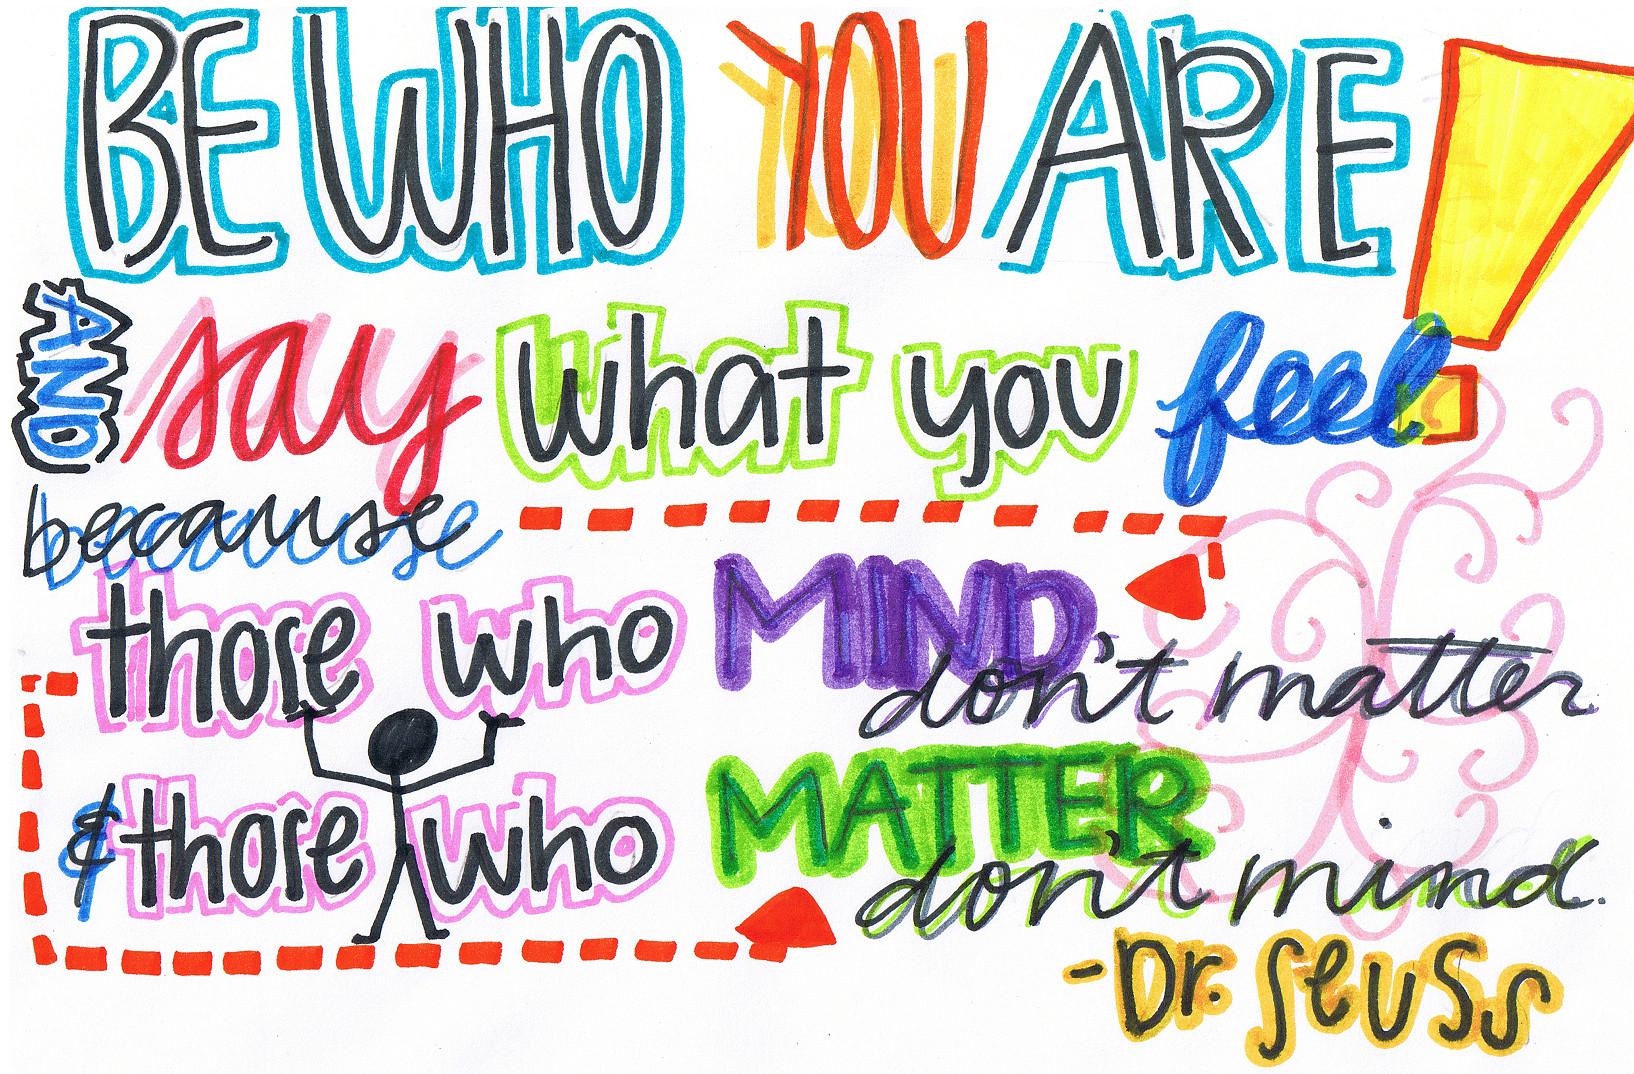 ... Splendid Dr Seuss Quote. Image By Pianoxlove112